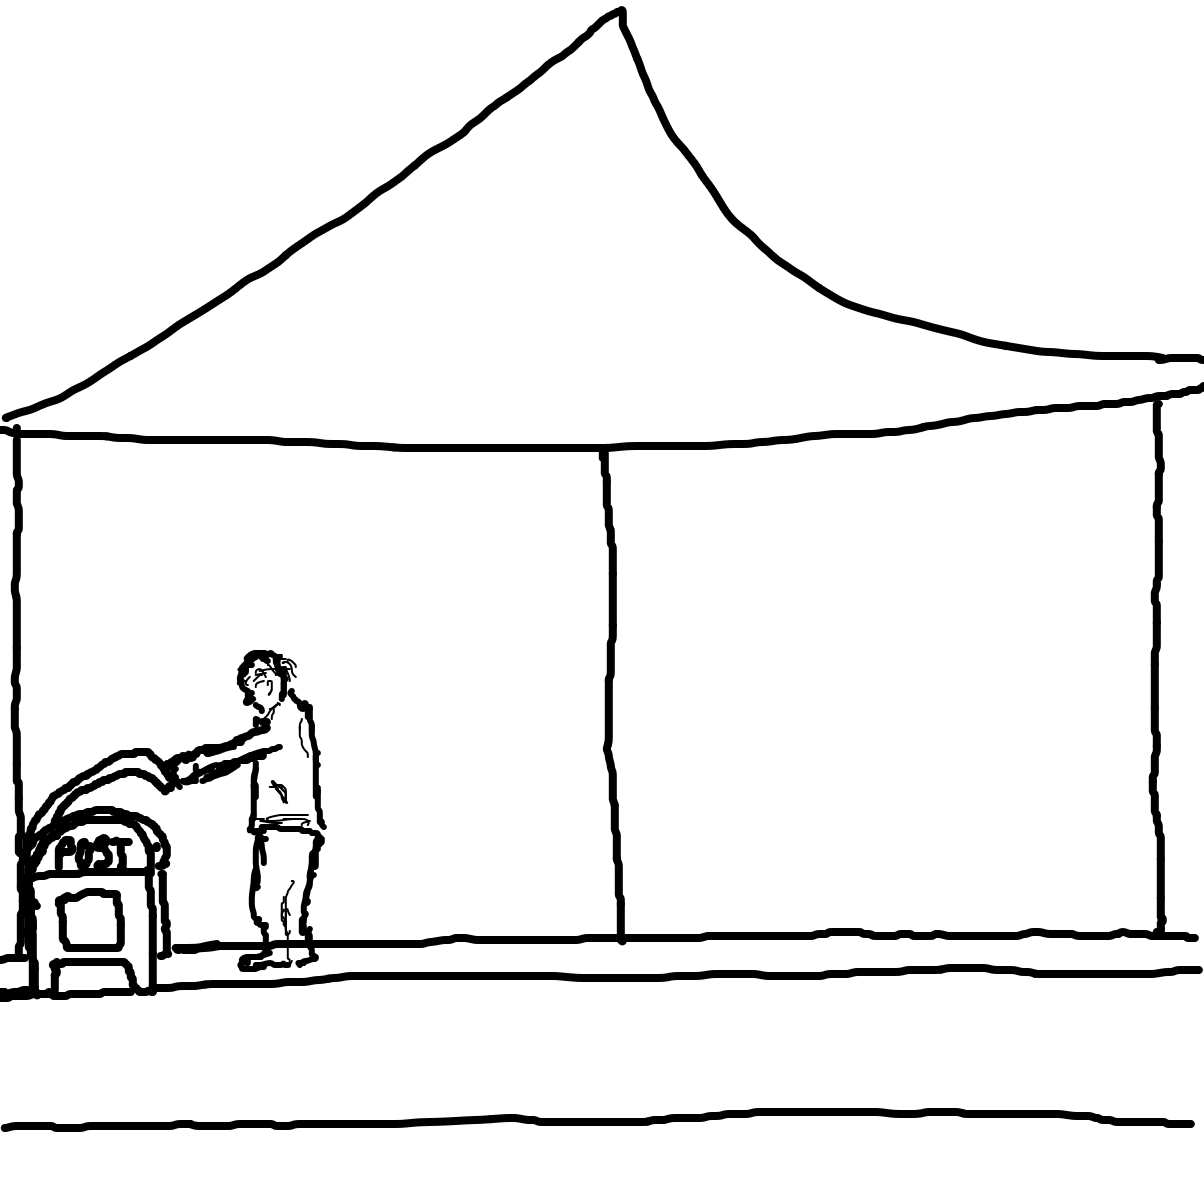 First panel in Anybody in here drawn in our free online drawing game